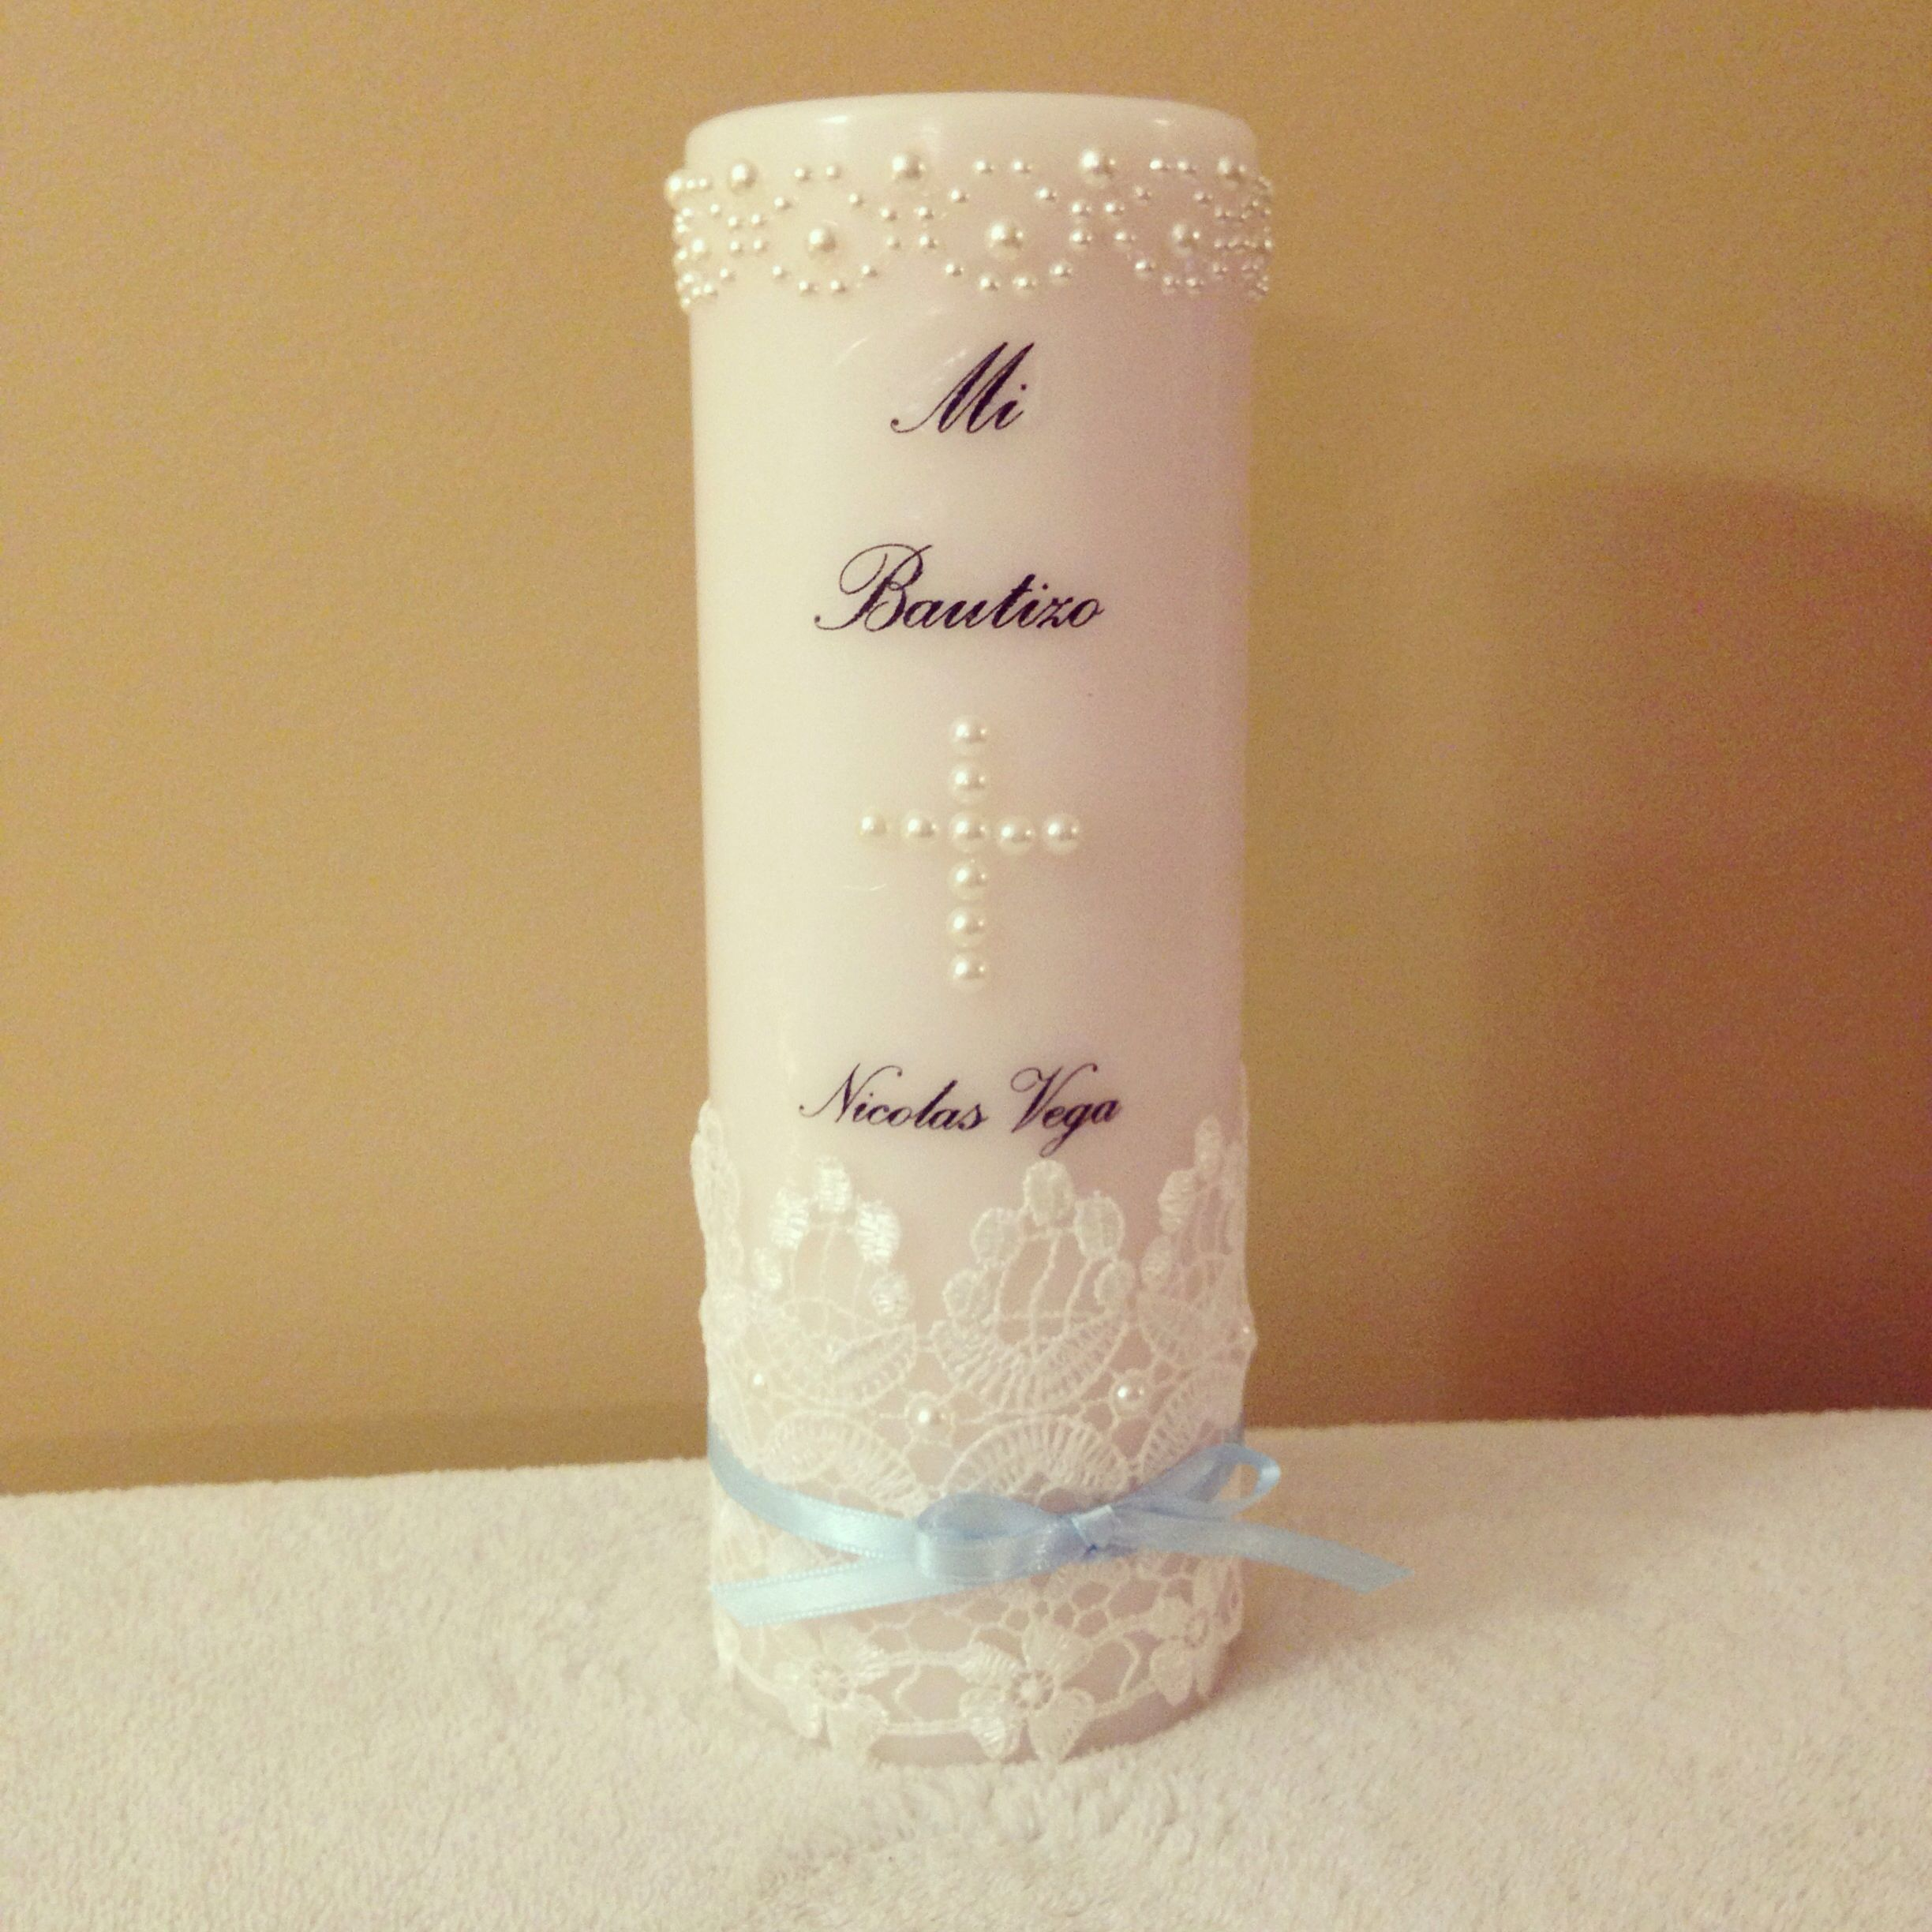 Baptism candle use stick on diamantes for a cross baptism baptism candle use stick on diamantes for a cross buycottarizona Gallery